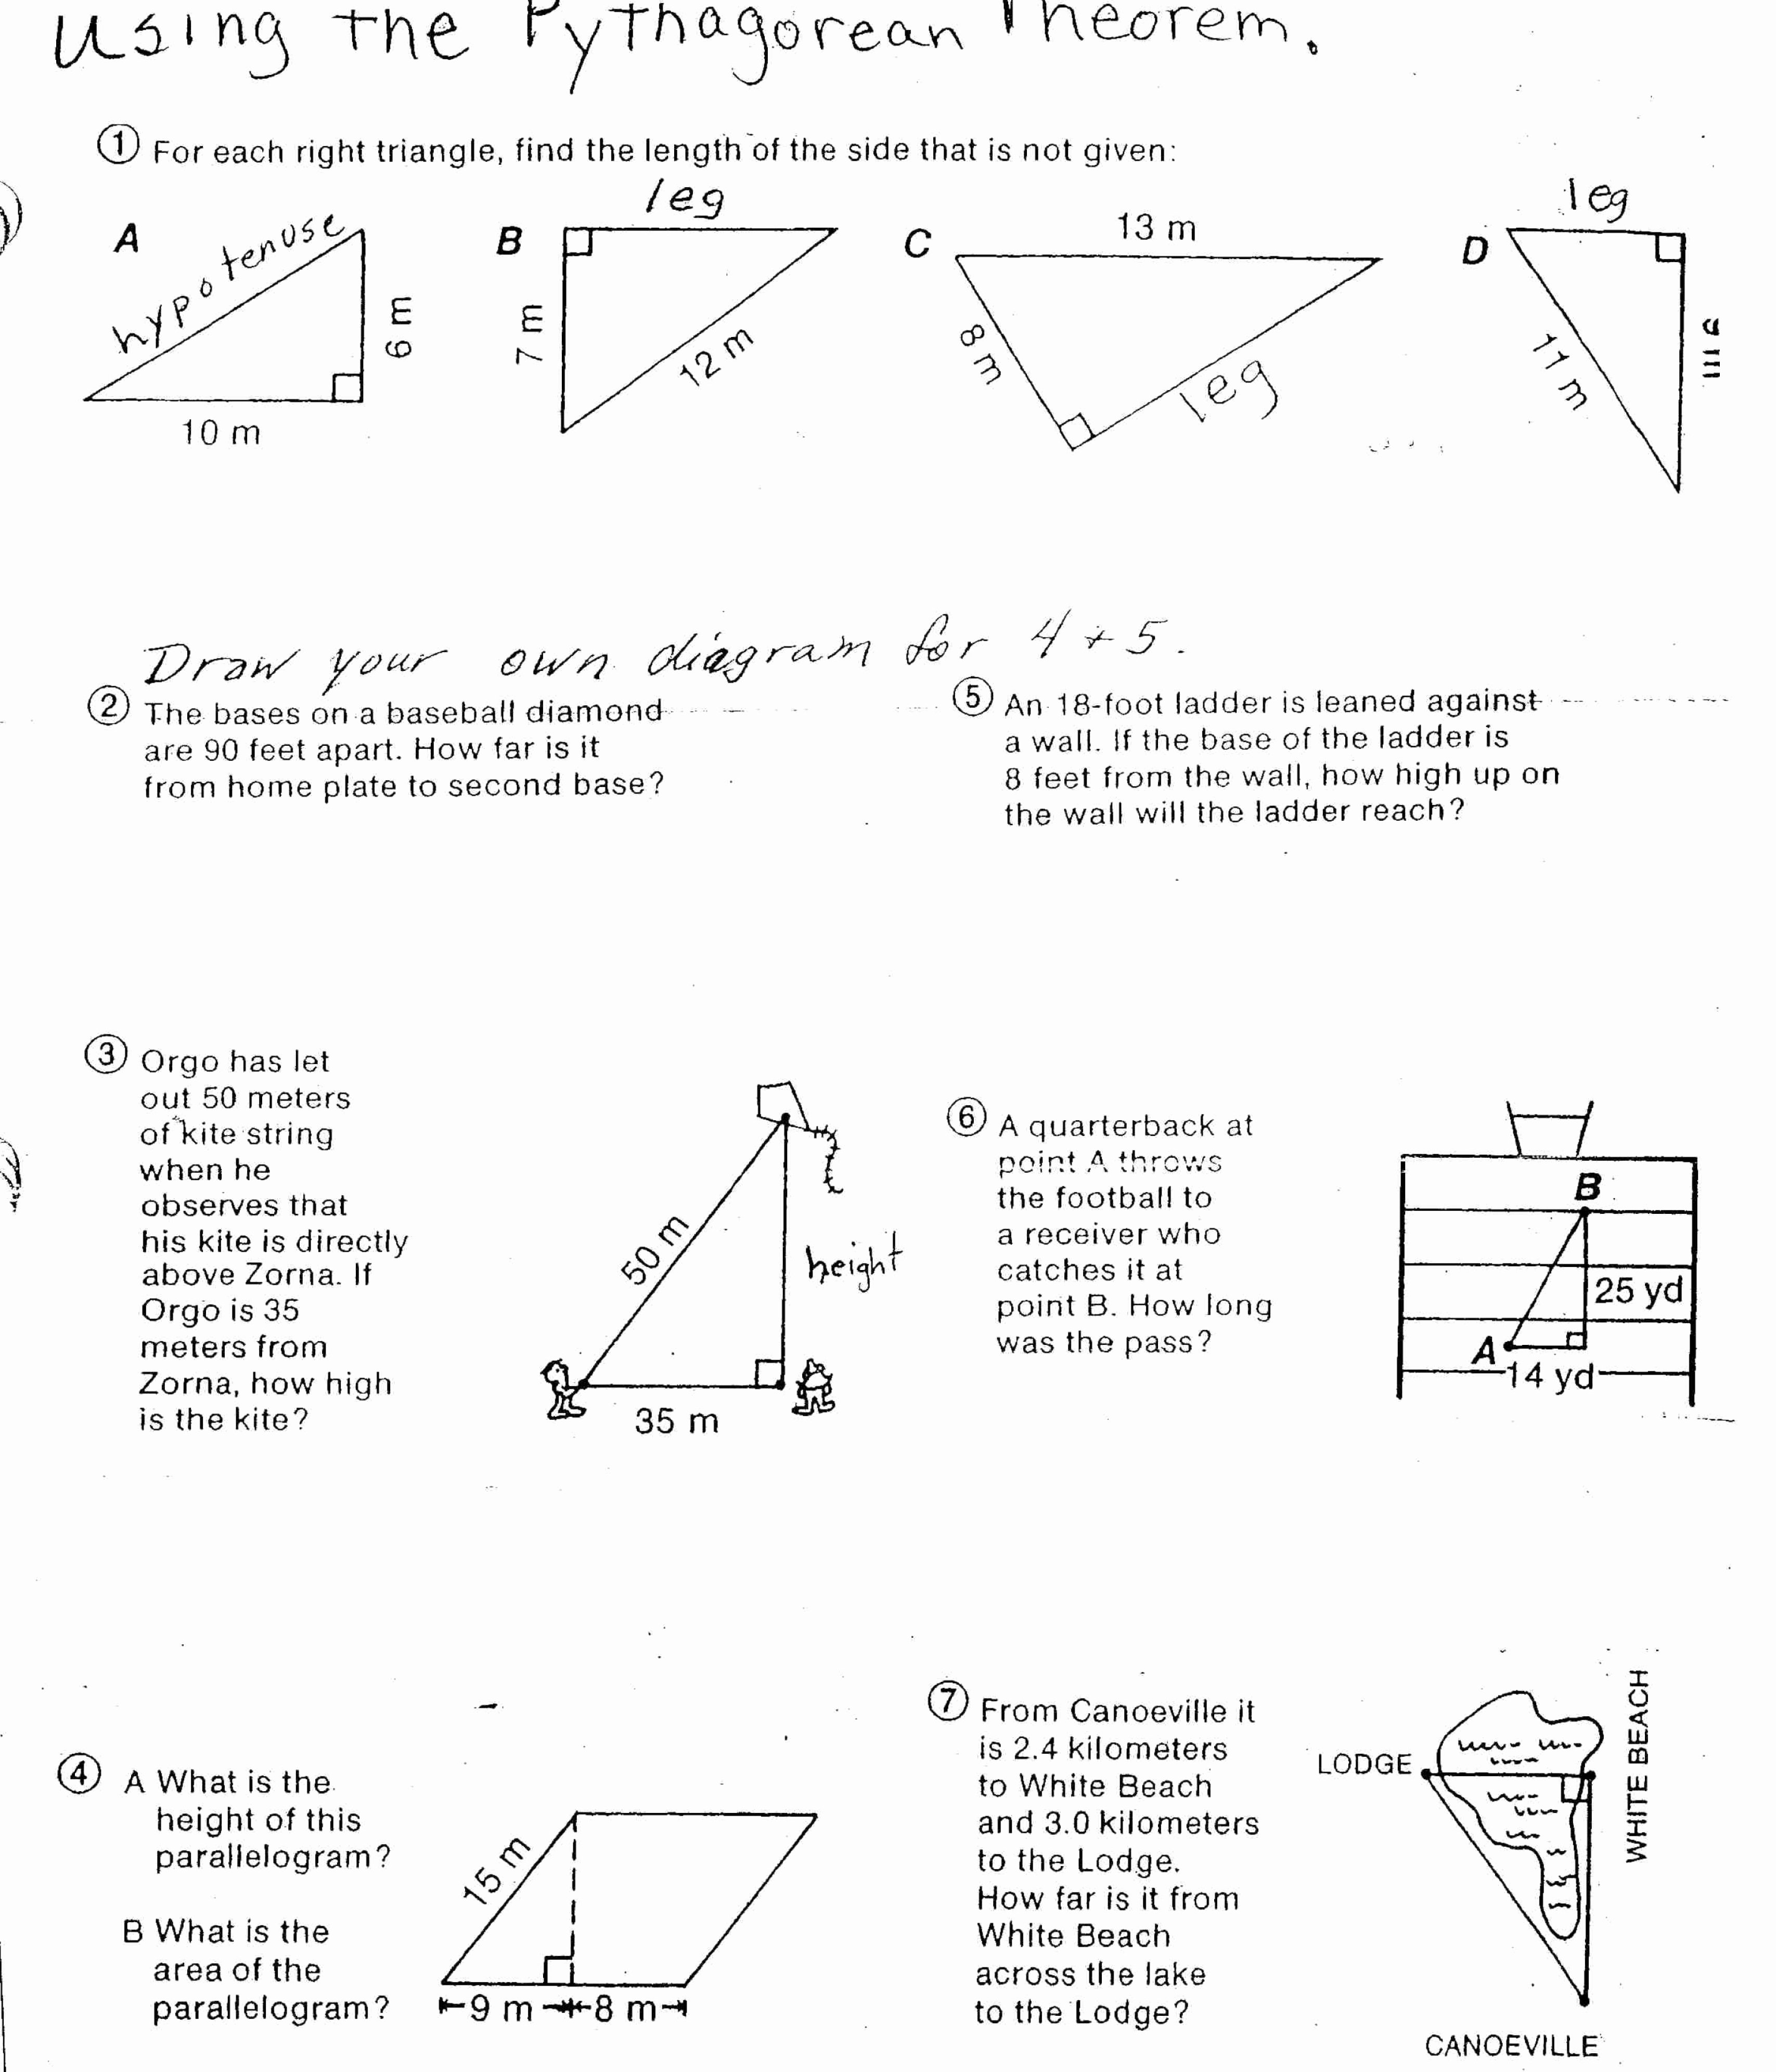 Vector Addition Worksheet with Answers New Vectors Worksheet 2 Answer Key